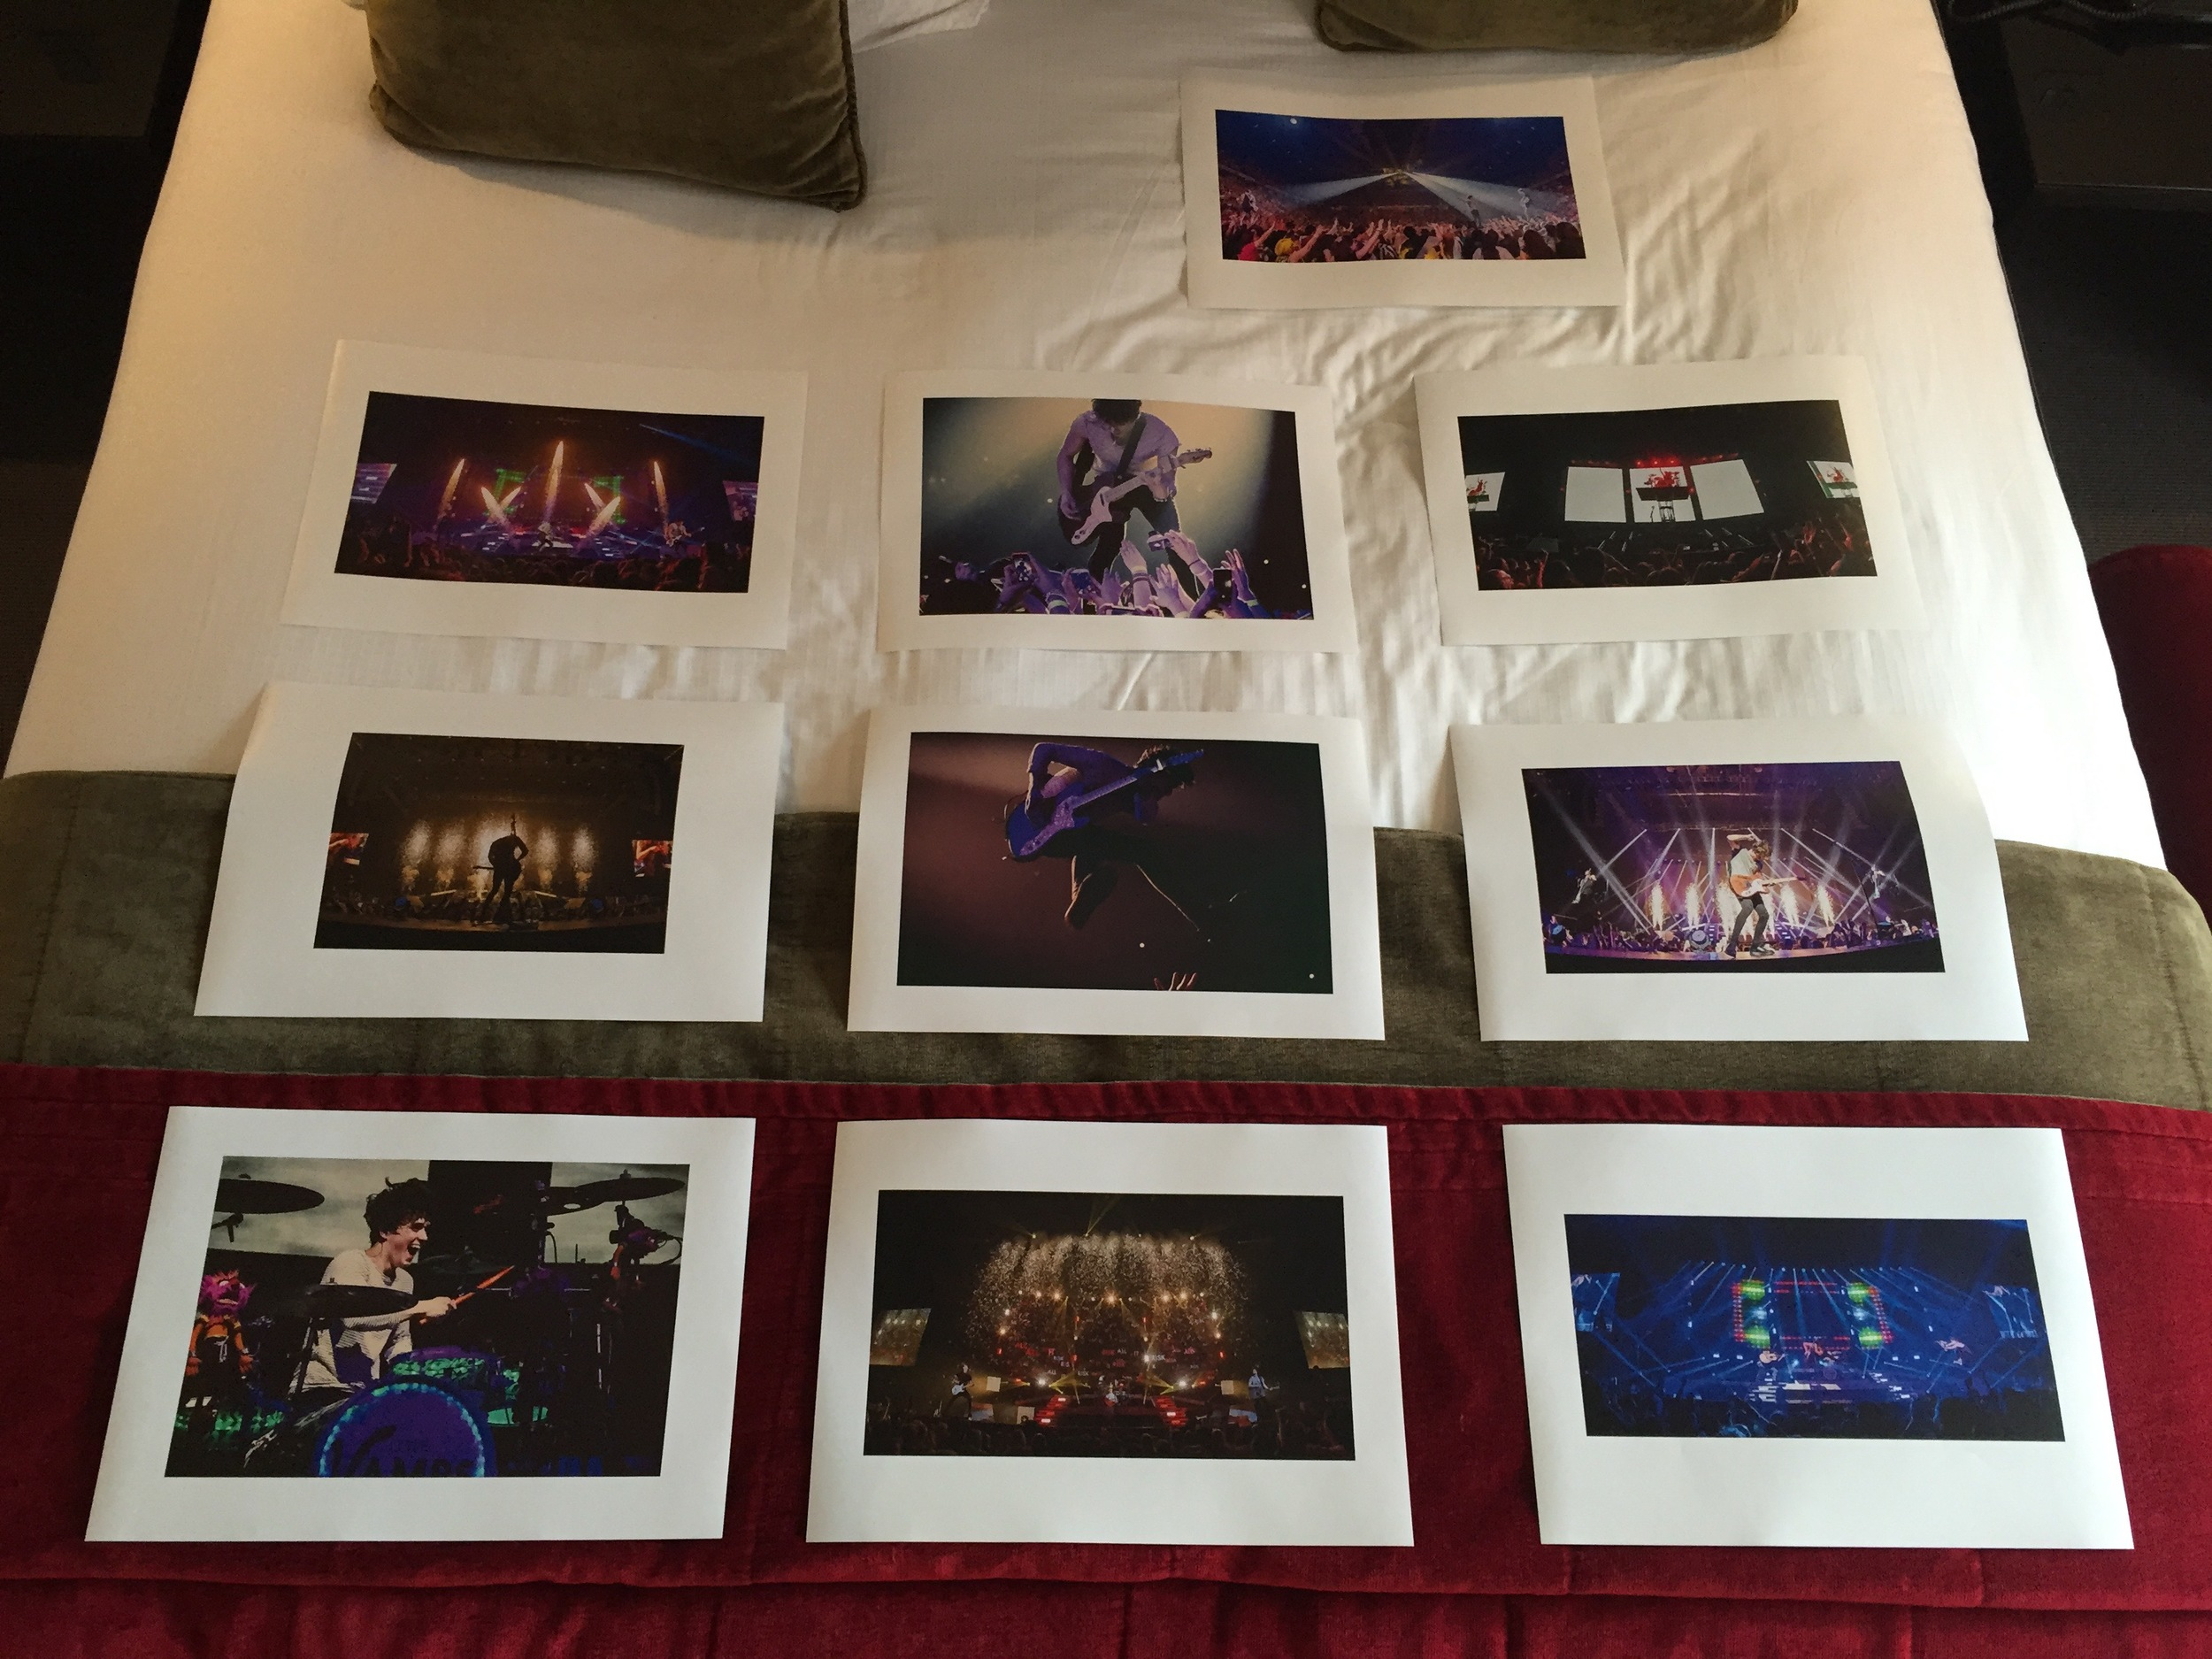 Some A3 prints from one of the shows. These will be on the walls in the crew room for my camera operators to see the sort of show they are about to work and hopefully portray some of the energy the boys bring to the stage each night.